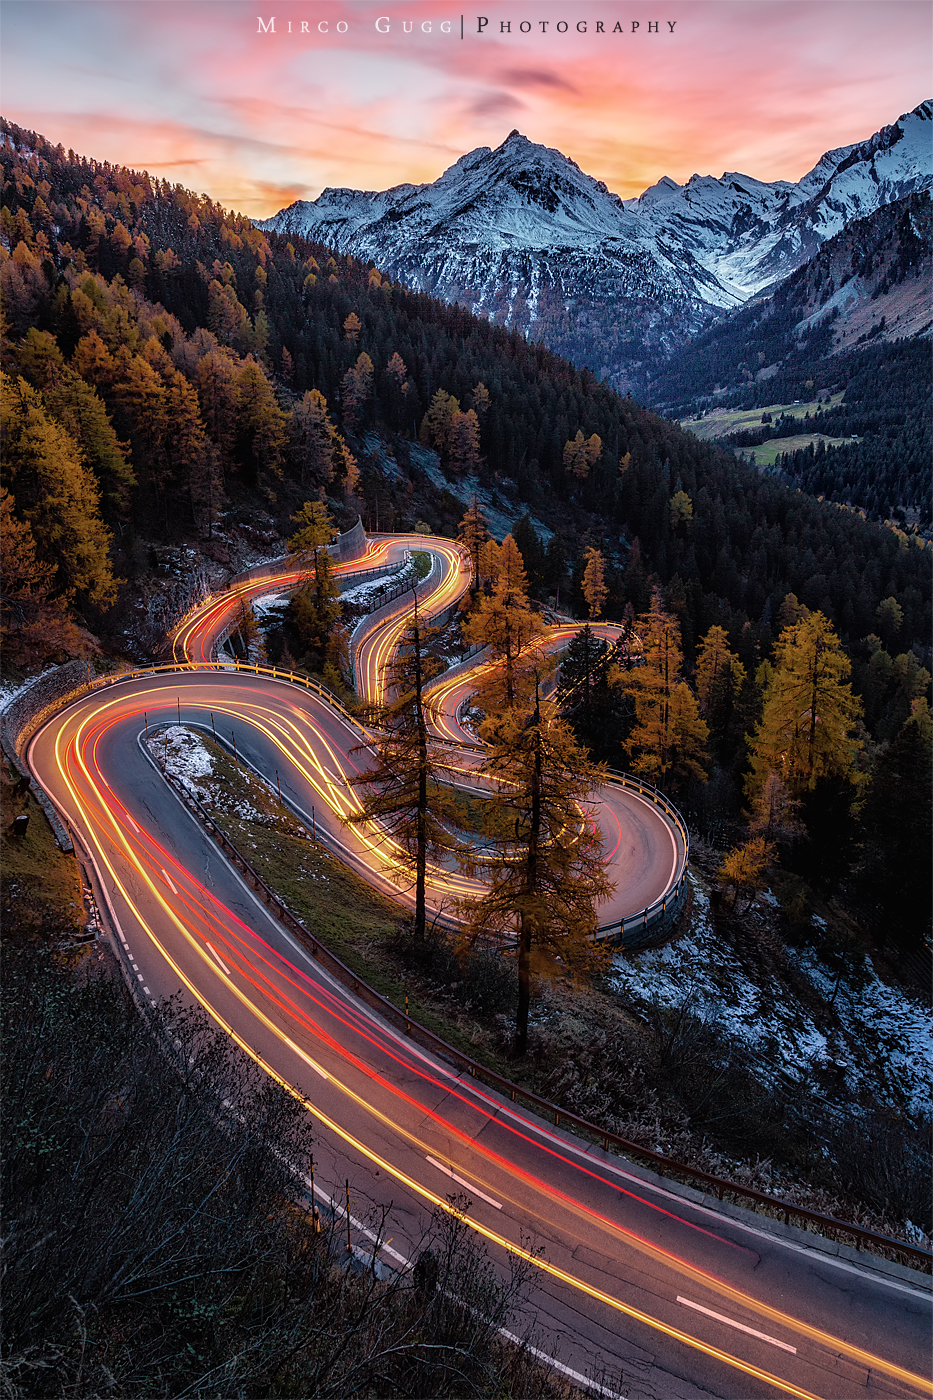 Maloja Pass Road, Switzerland